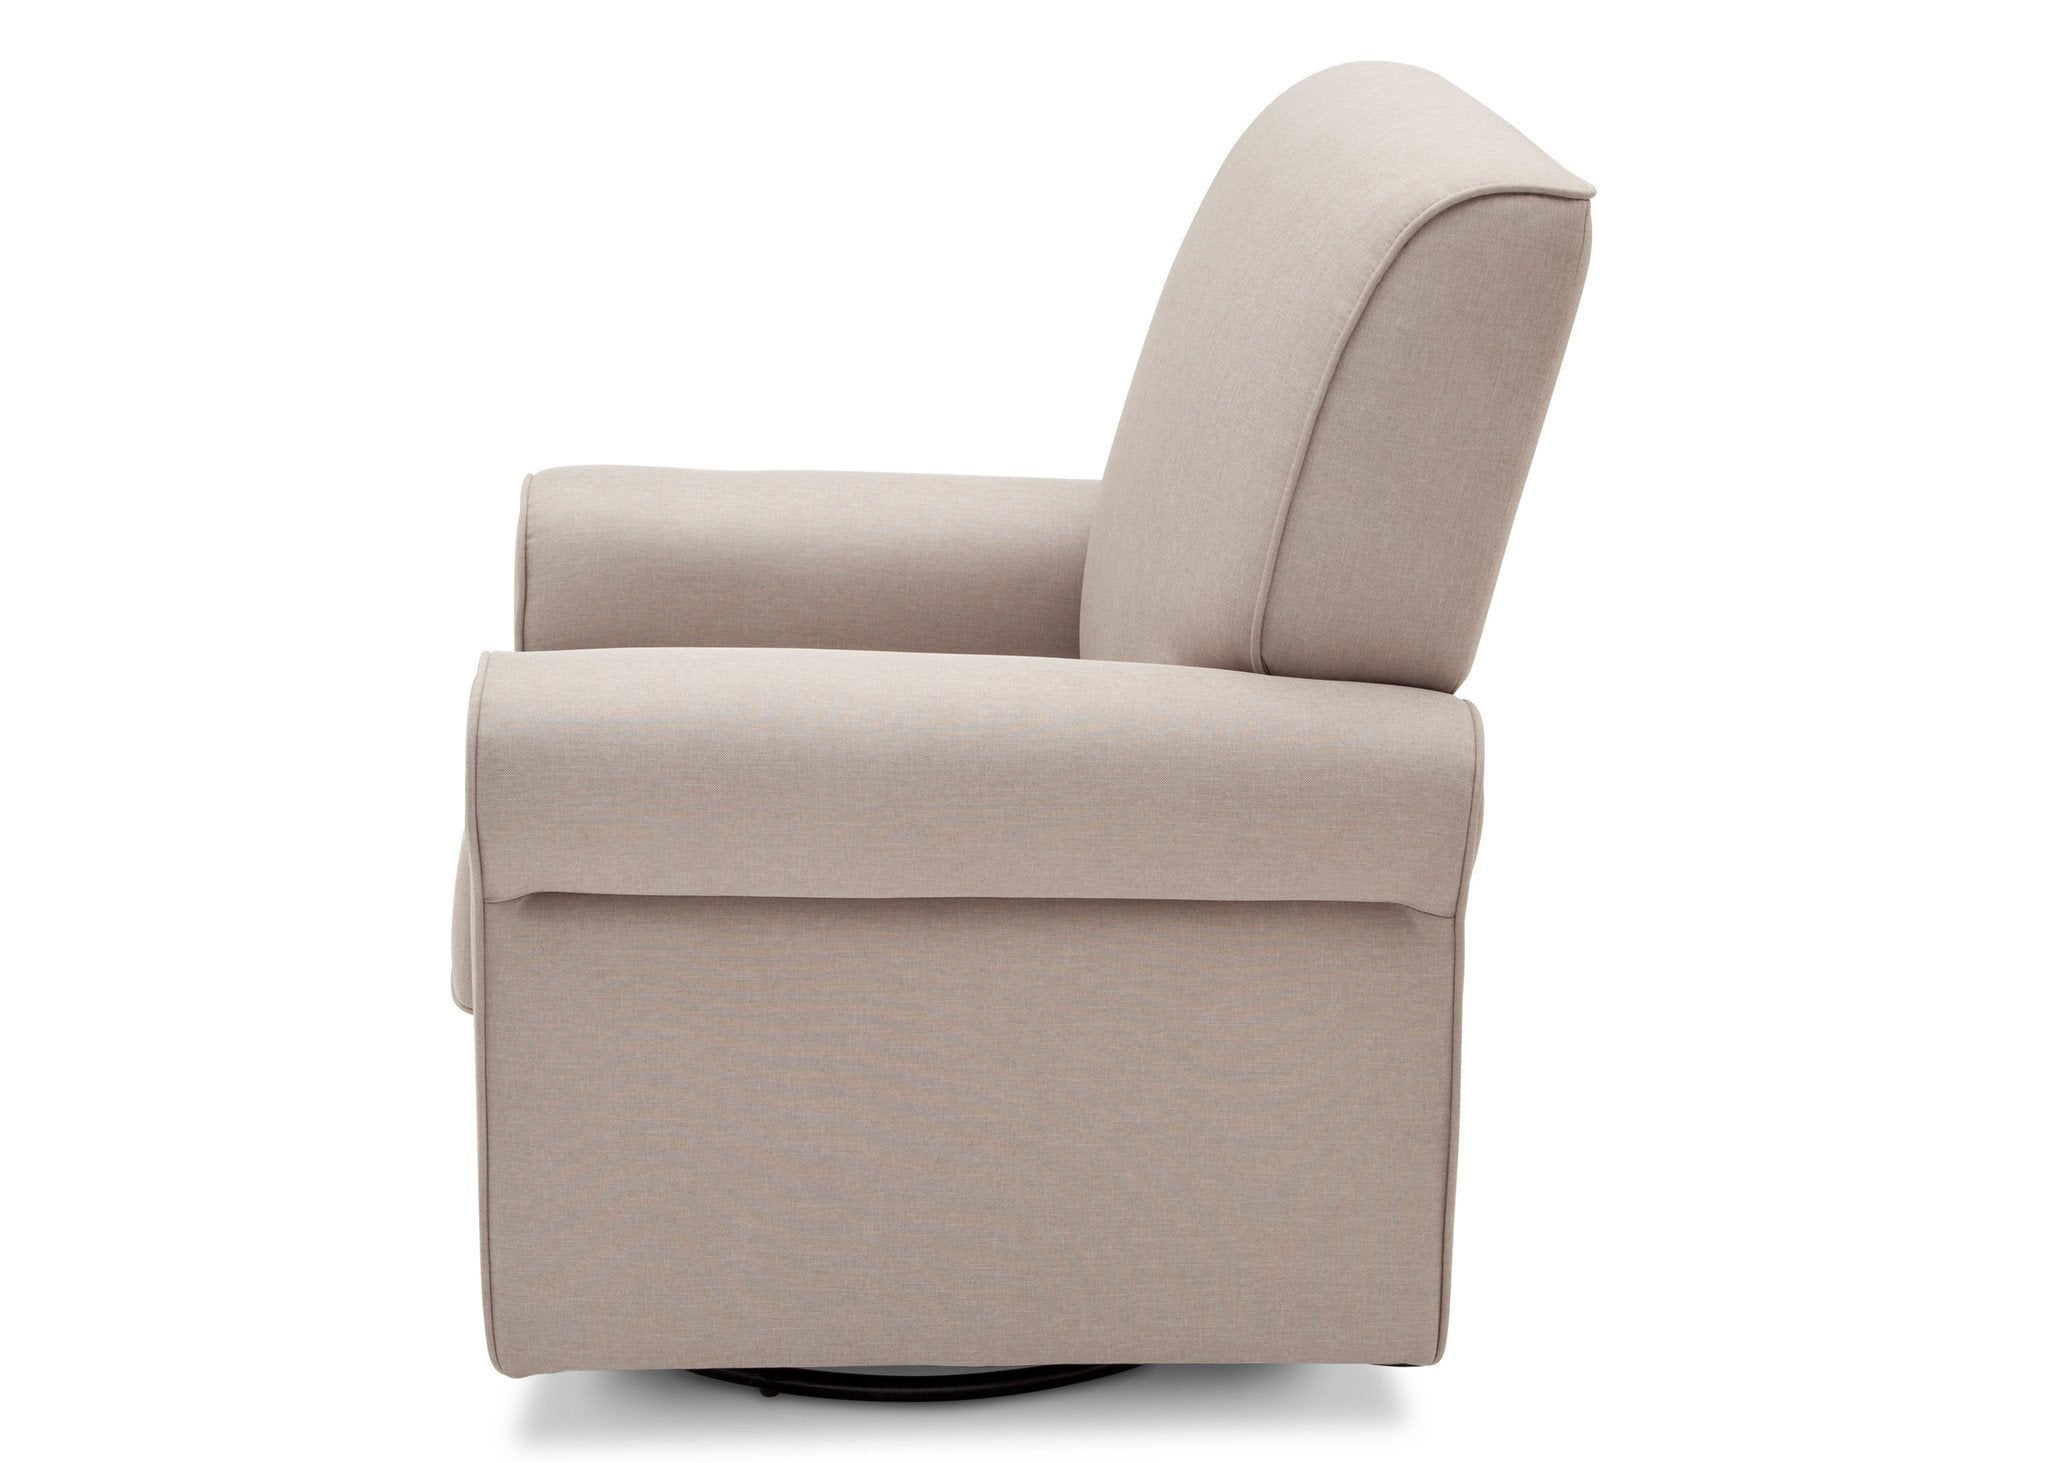 Simmons Kids Taupe (065) Avery Upholstered Glider, Full Left Side View b5b